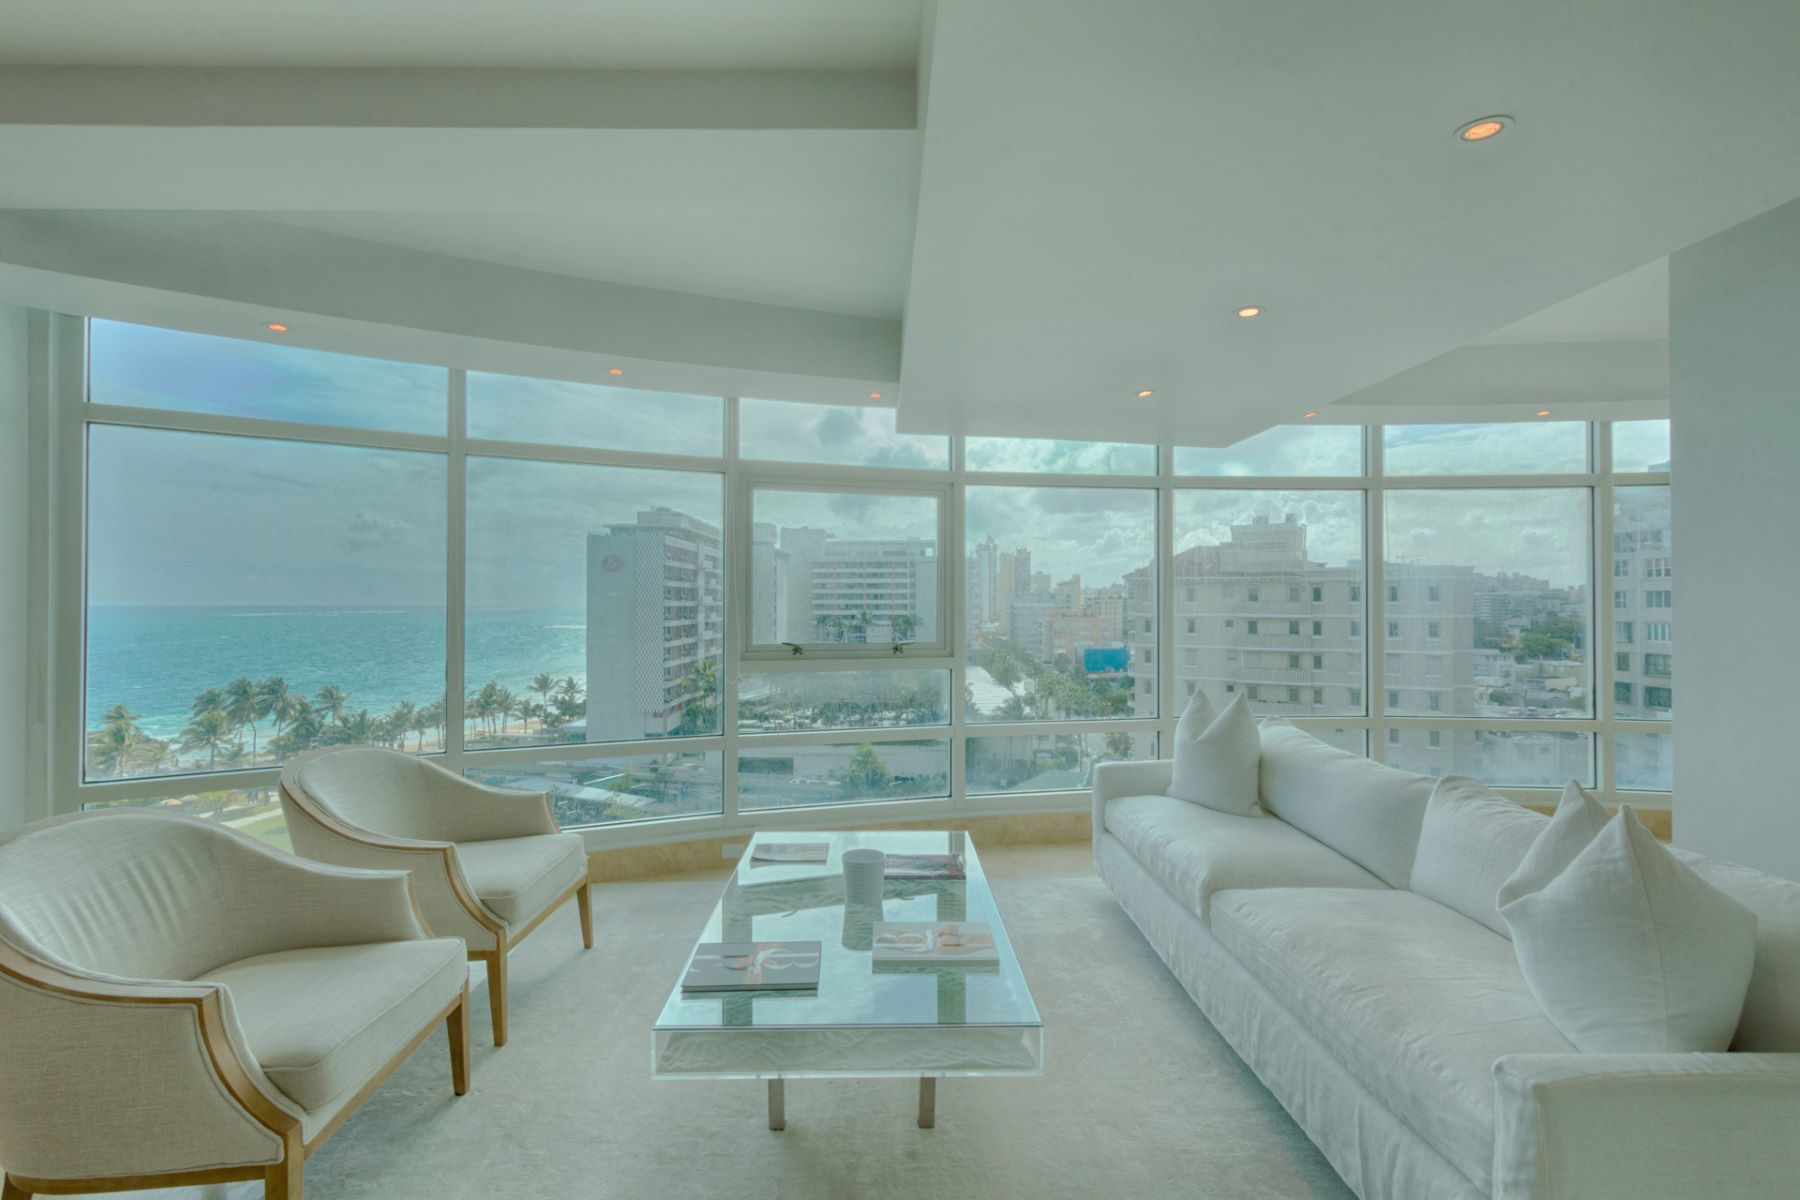 Additional photo for property listing at Modern 9th floor Ocean View at The Bristol 1052 Ashford Ave, Apt 9B San Juan, Puerto Rico 00907 Puerto Rico